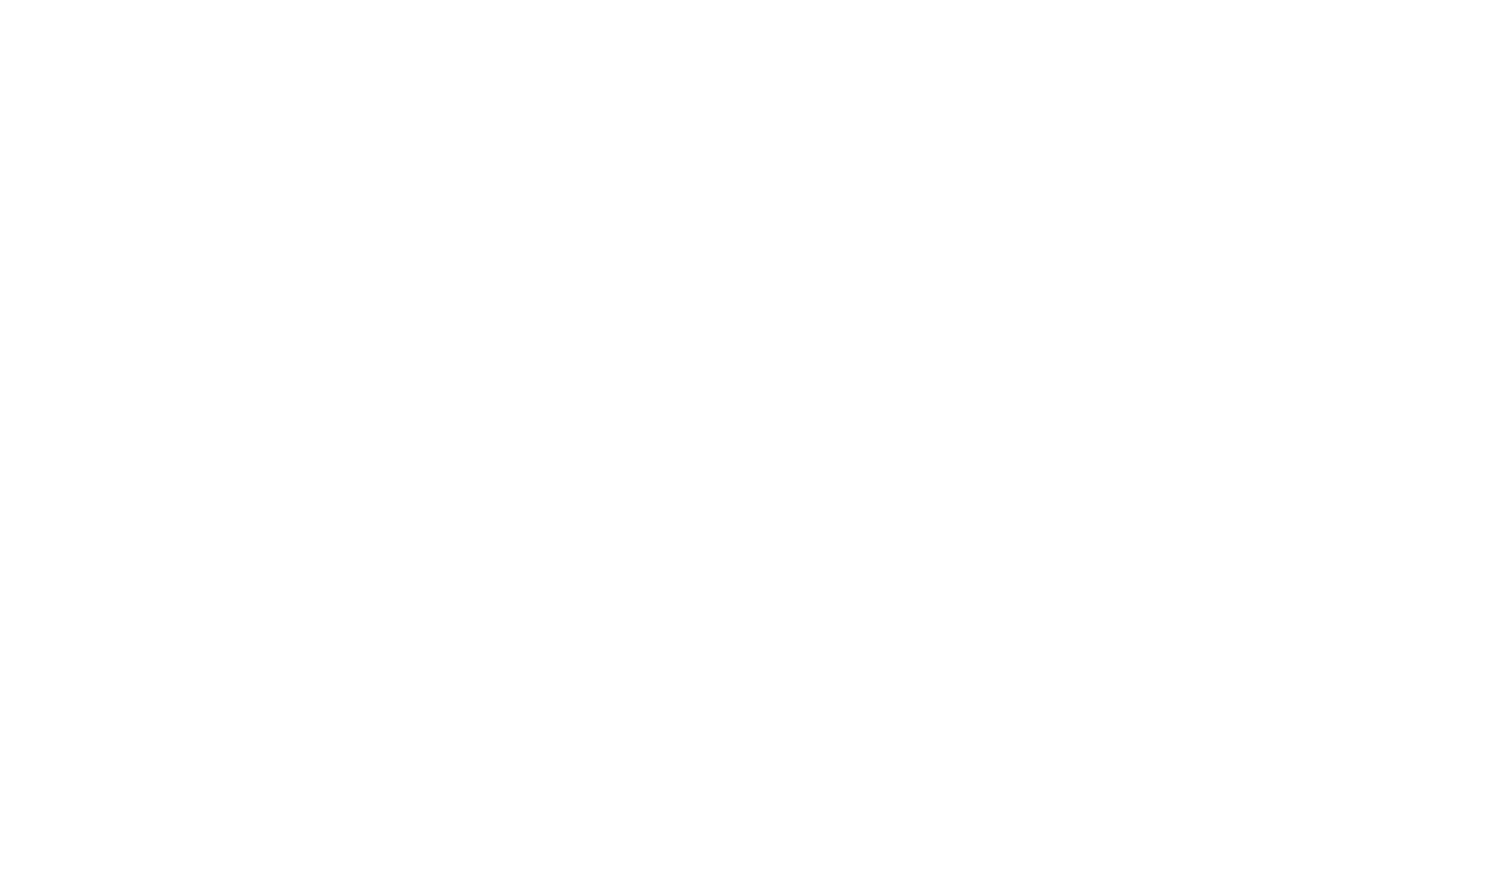 THIS WONDROUS LIFE